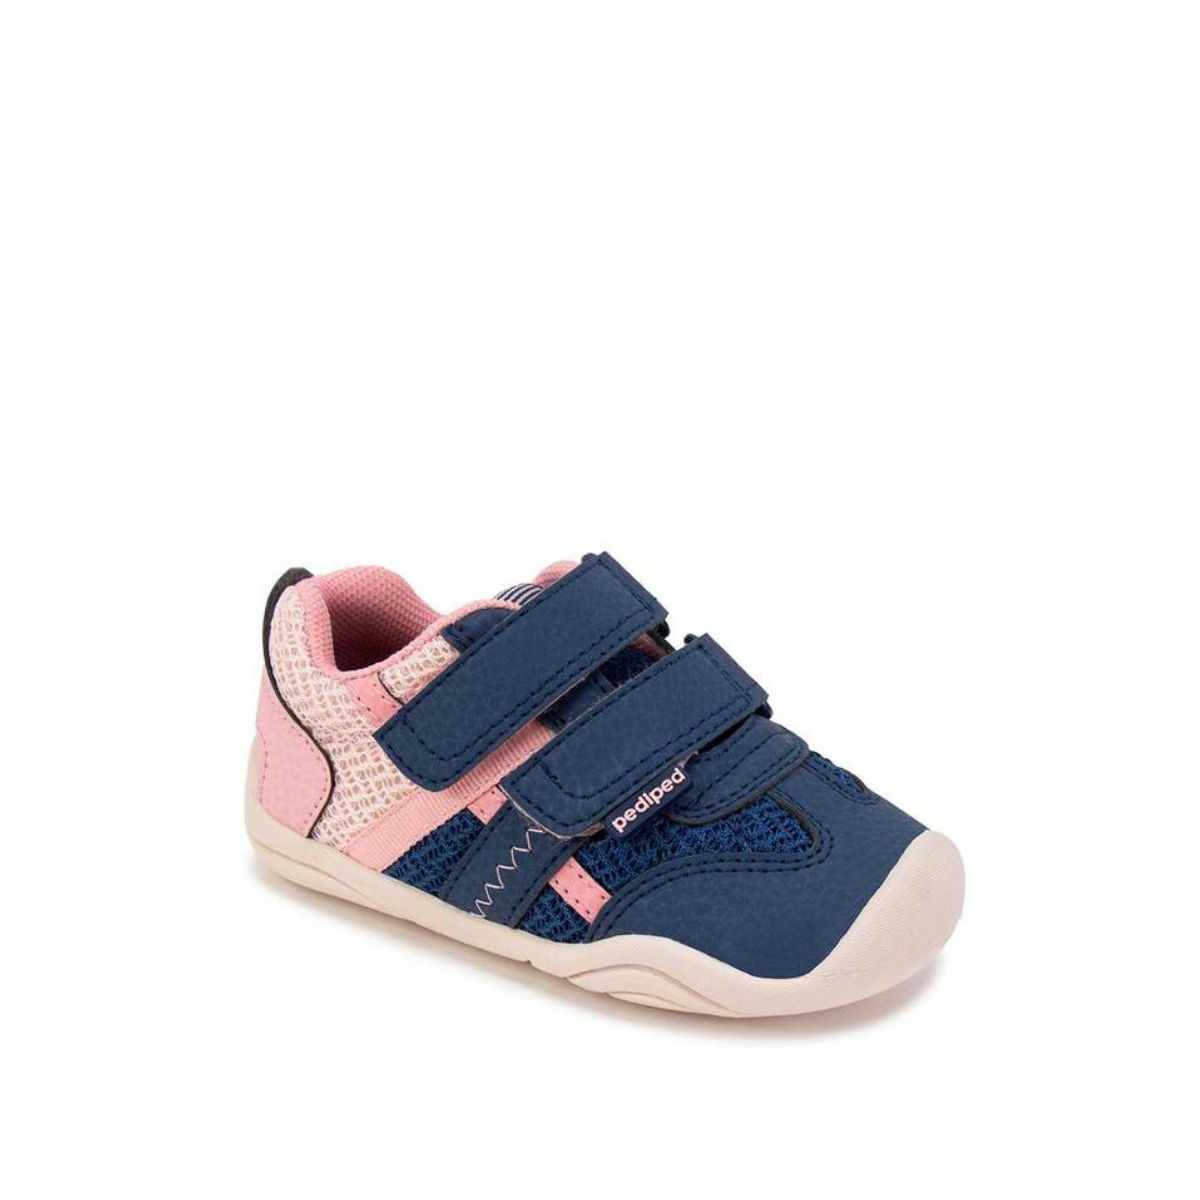 Pediped Gehrig pink navy